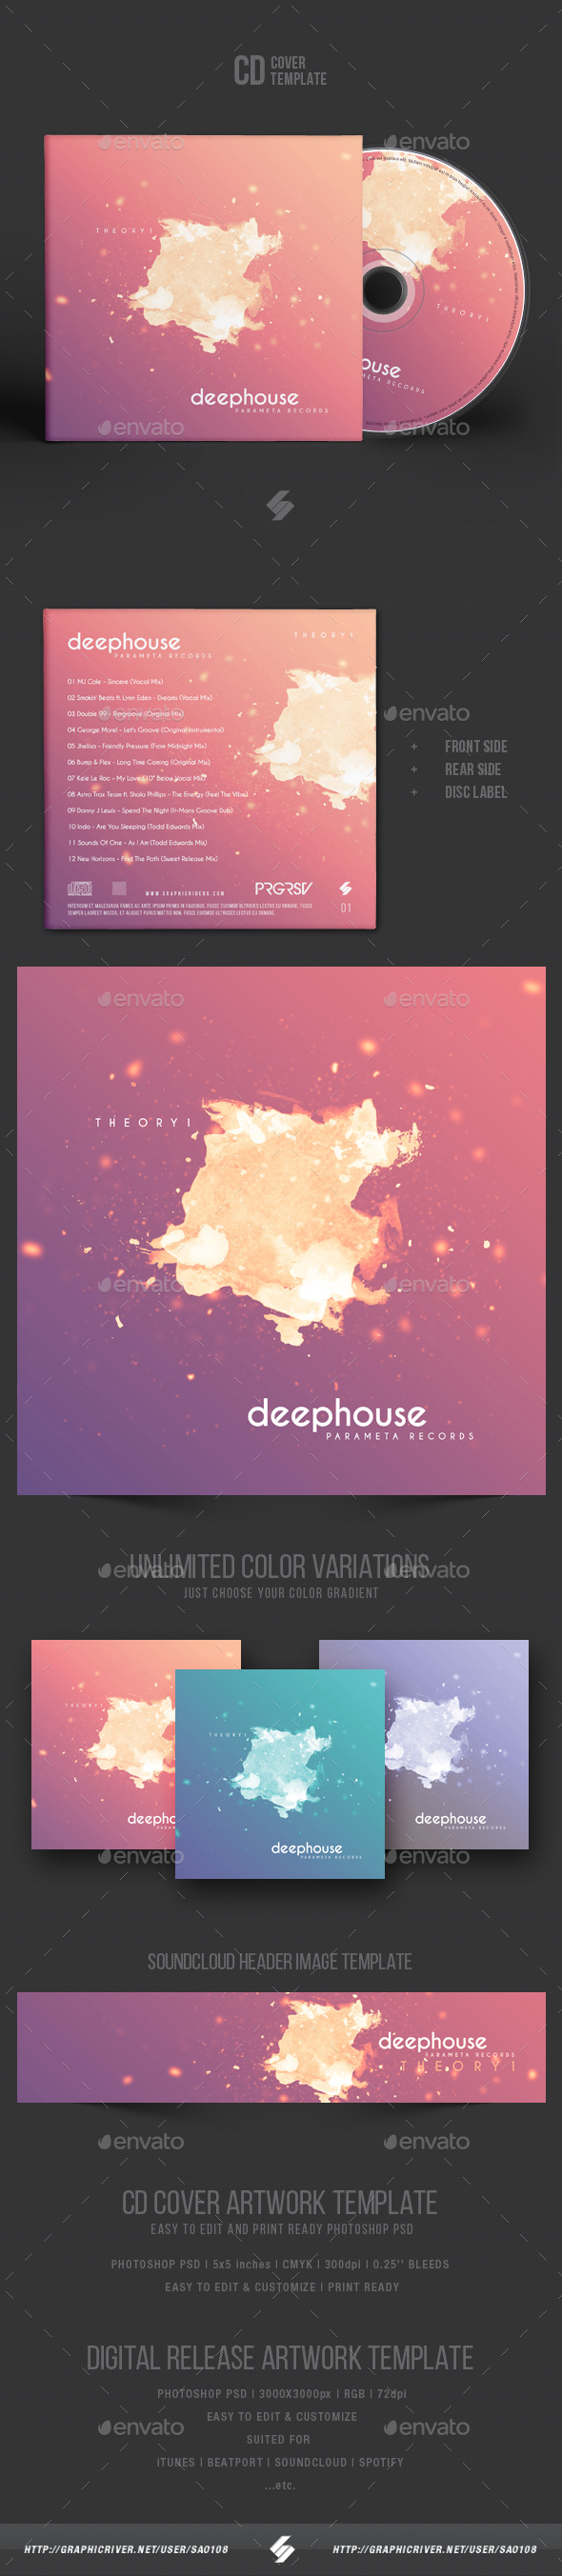 Deep House Theory - CD Cover Artwork Template - CD & DVD Artwork Print Templates